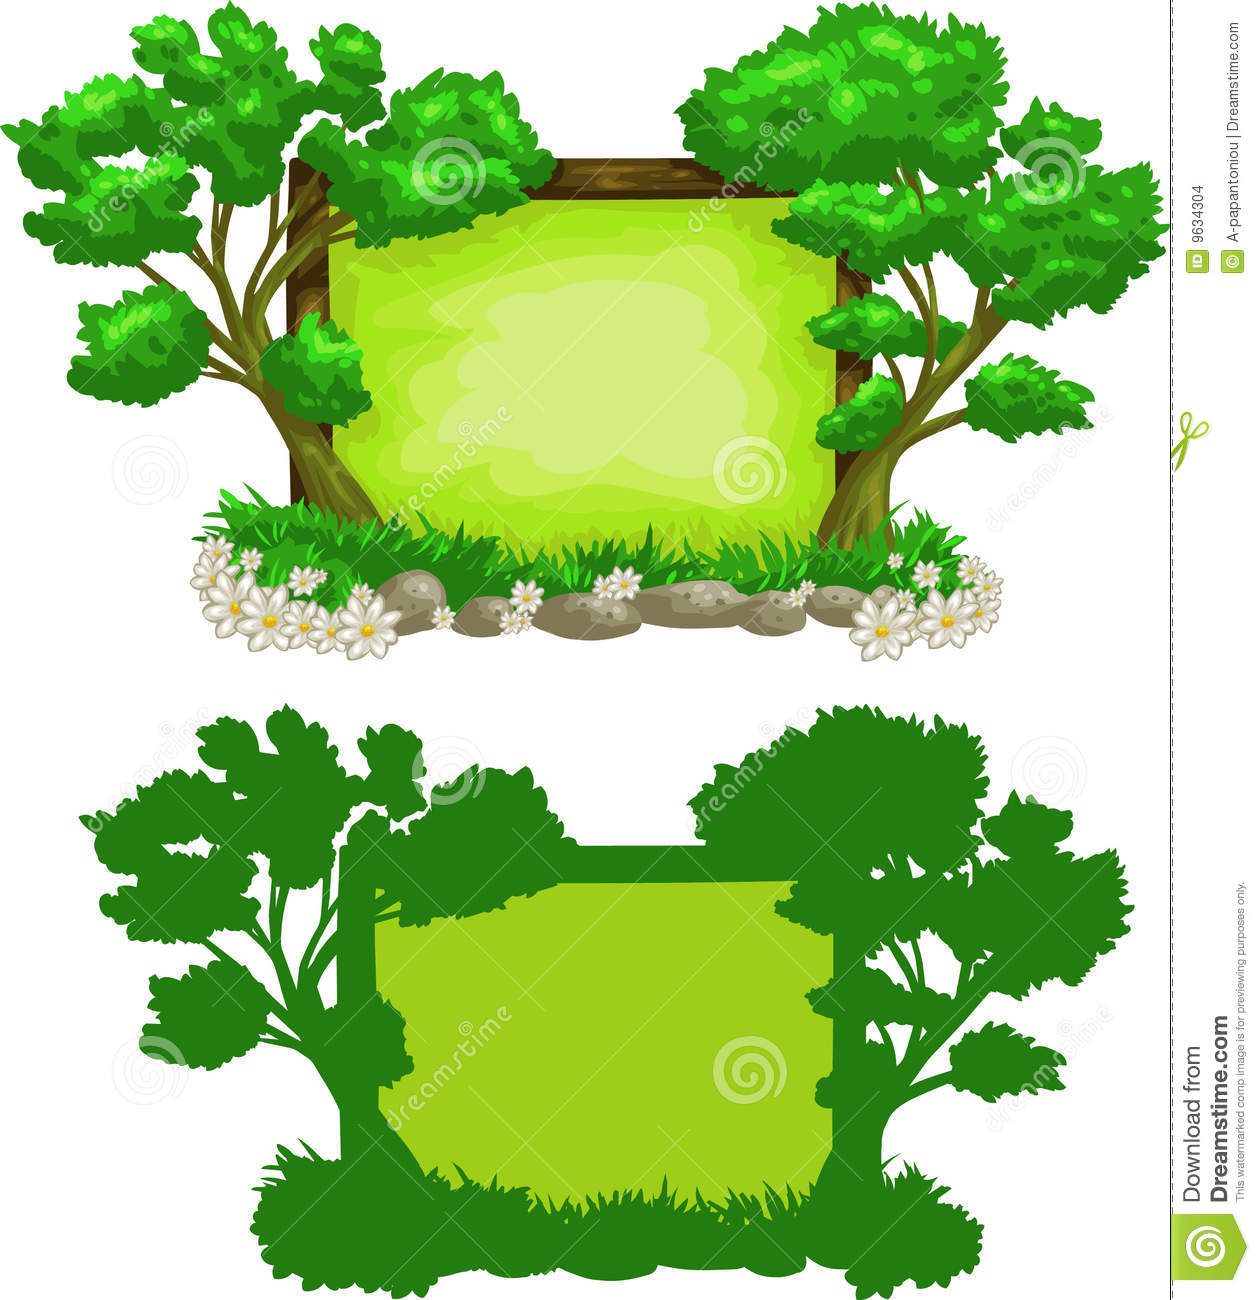 Tree clipart forest tree #10